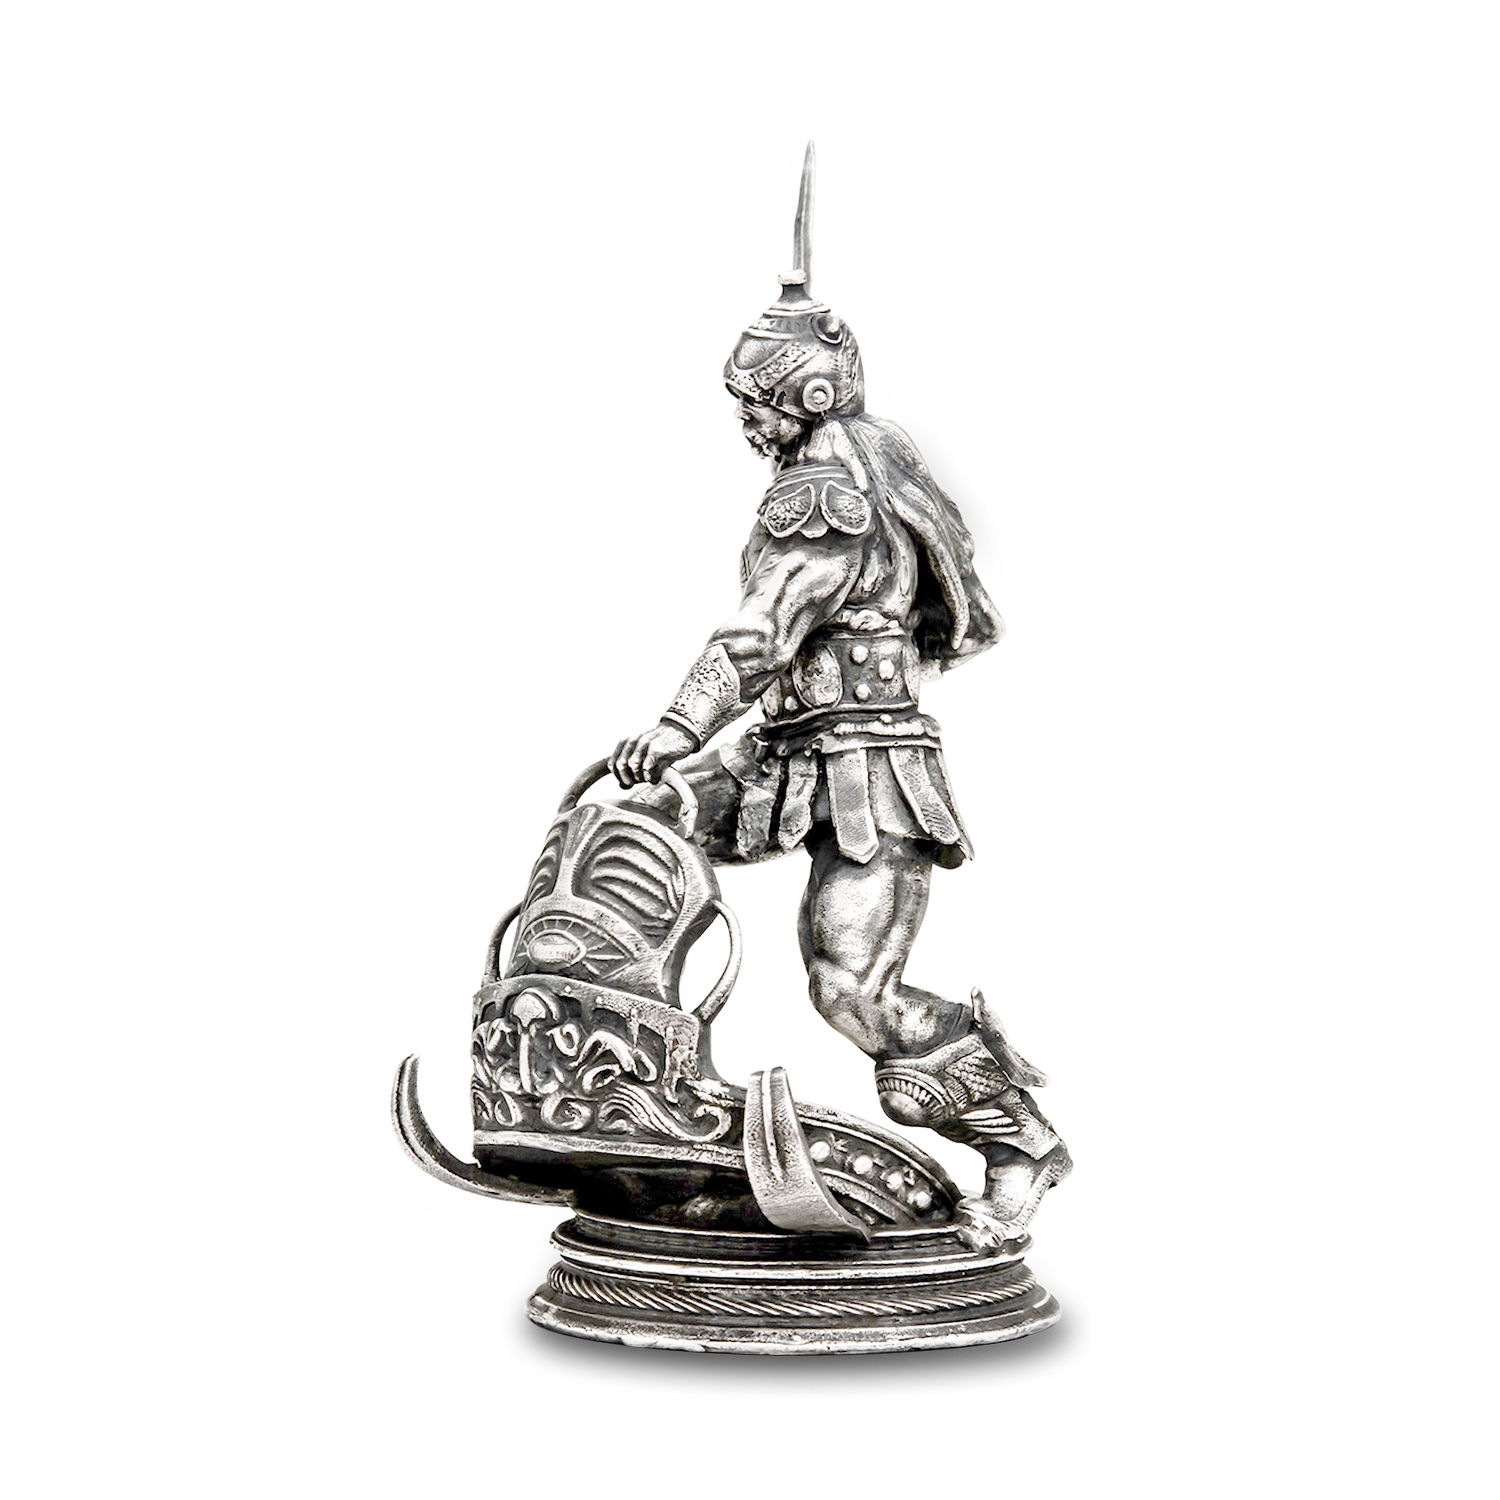 8 oz Silver Antique Statue - Frank Frazetta (Silver Warrior)